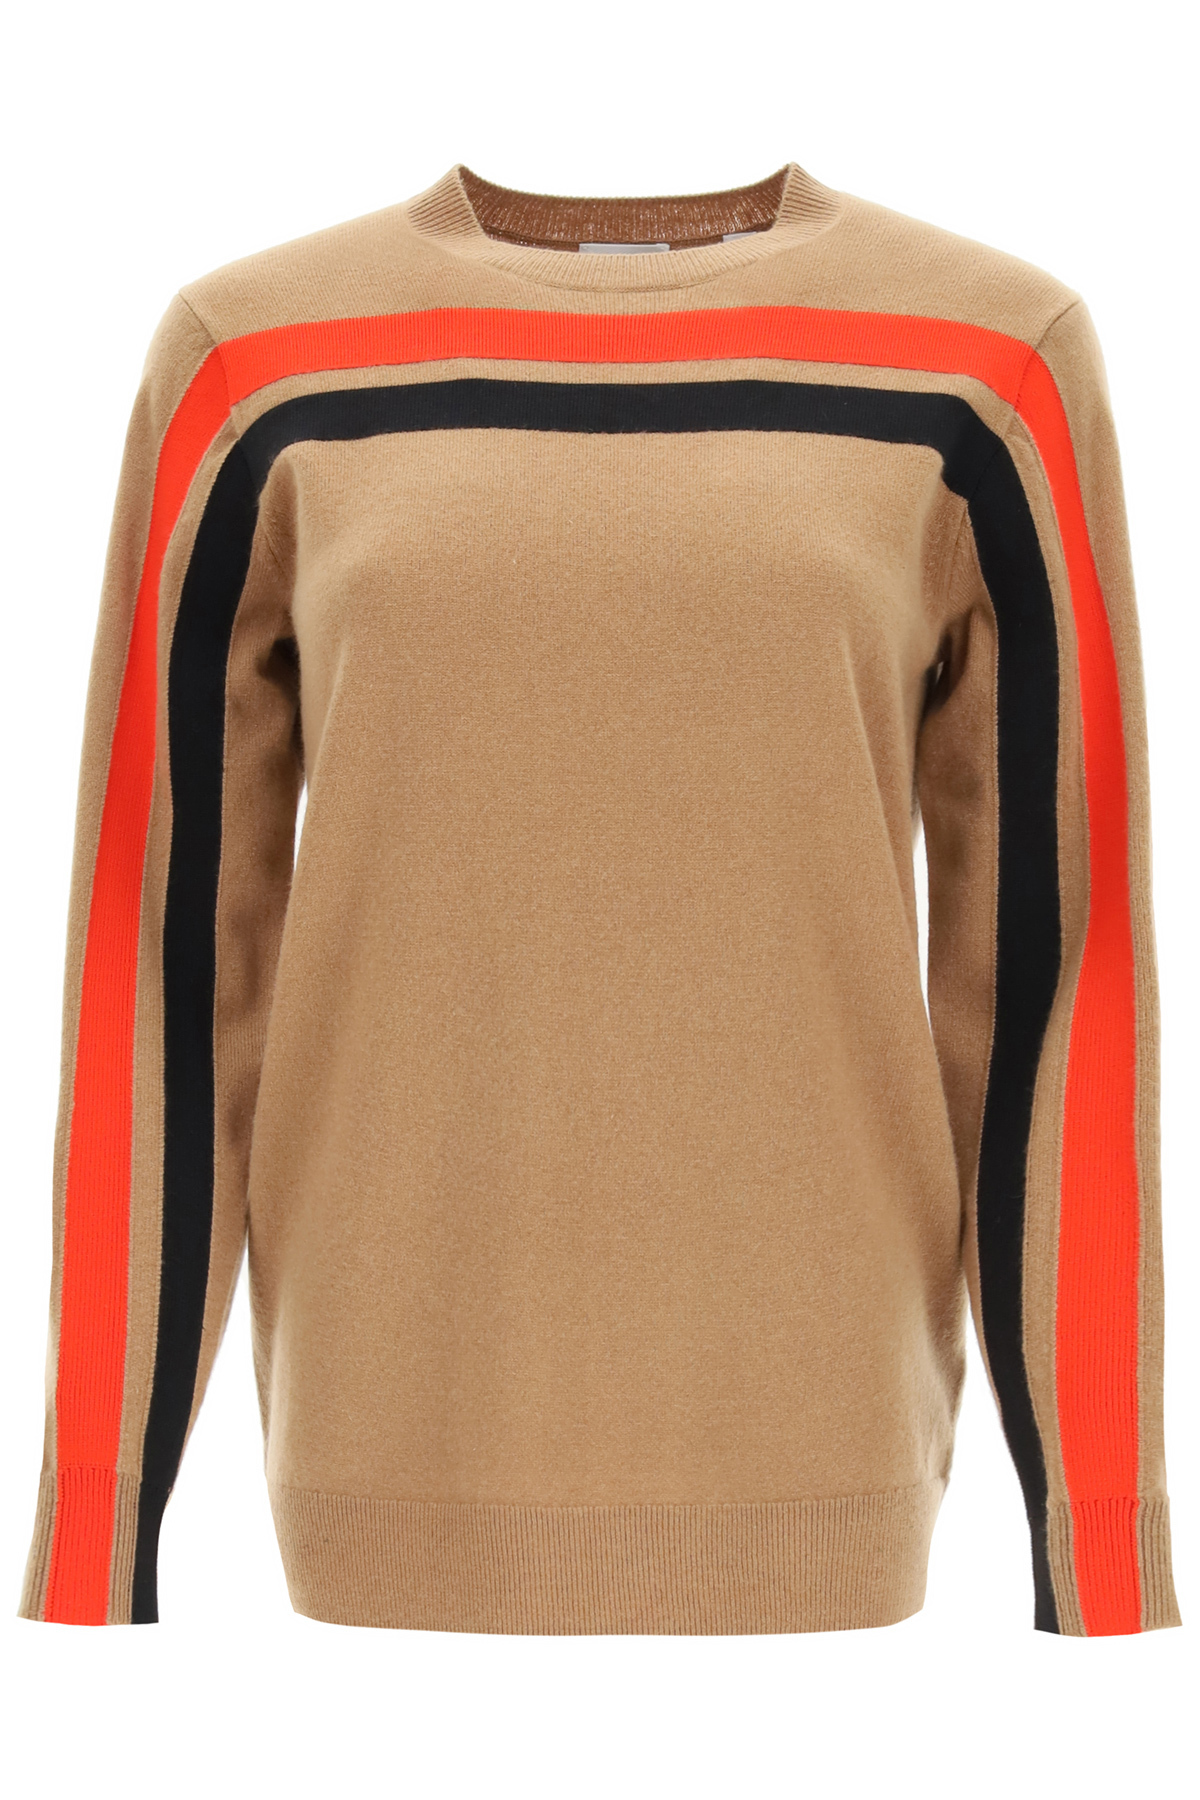 BURBERRY STEFFY SWEATER IN TECHNICAL CASHMERE XS Brown, Red, Black Cashmere